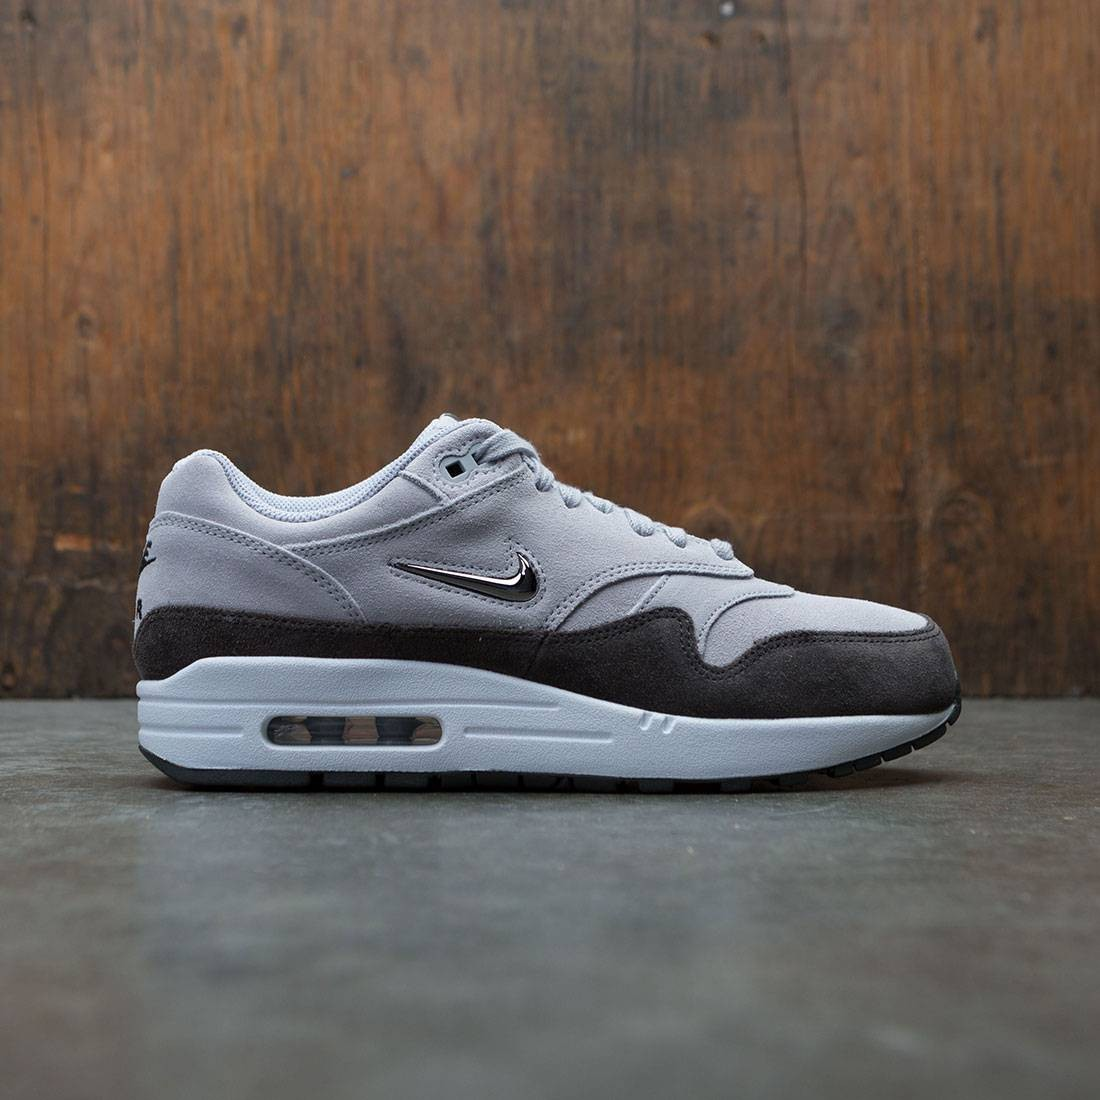 super popular 8ad98 2ecc2 nike women air max 1 premium sc grey wolf grey mtlc pewter deep pewter white